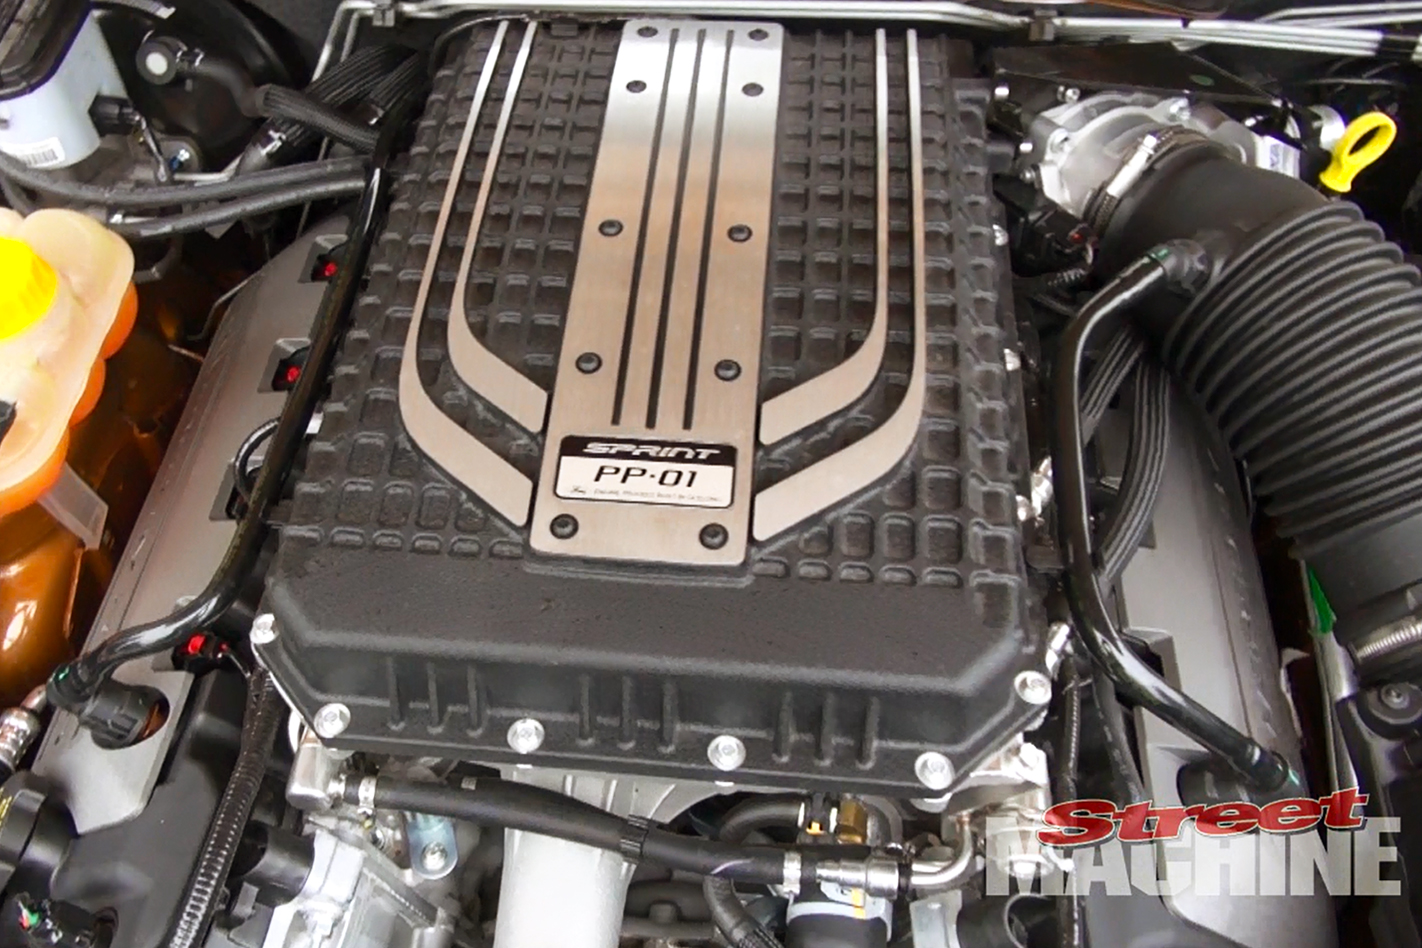 Falcon XR8 Sprint engine